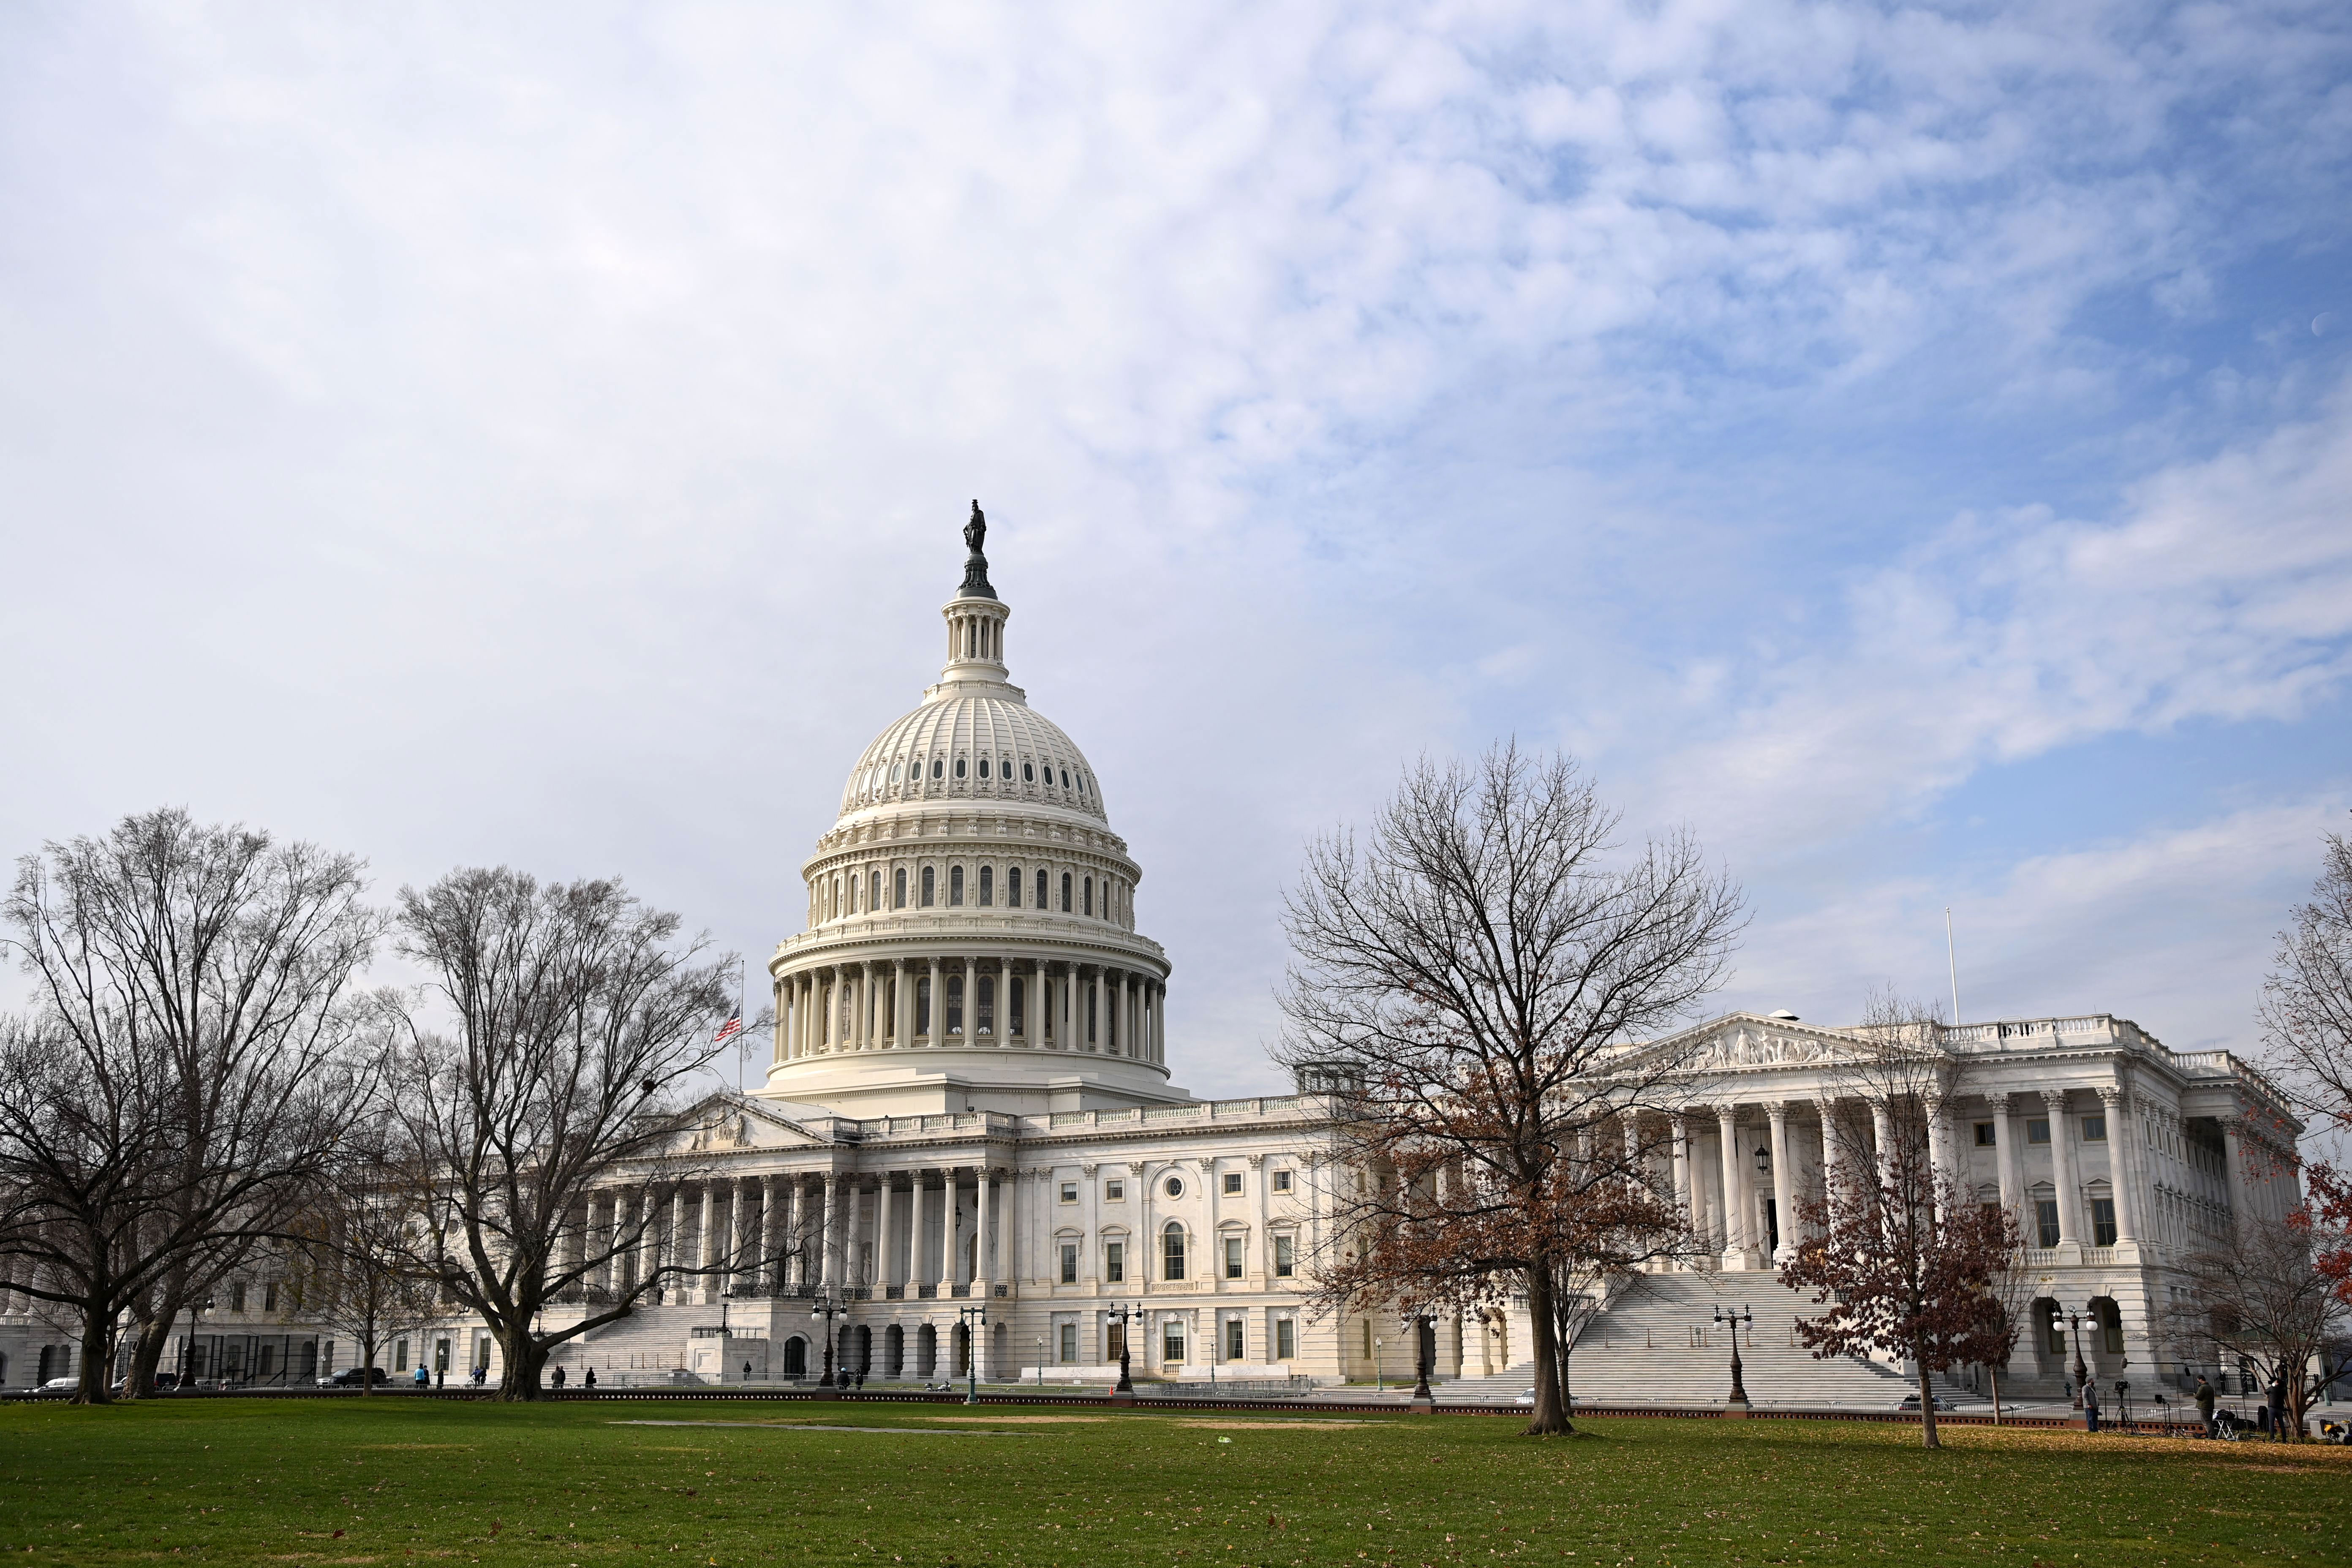 The United States Capitol is pictured in Washington, DC, on December 7.